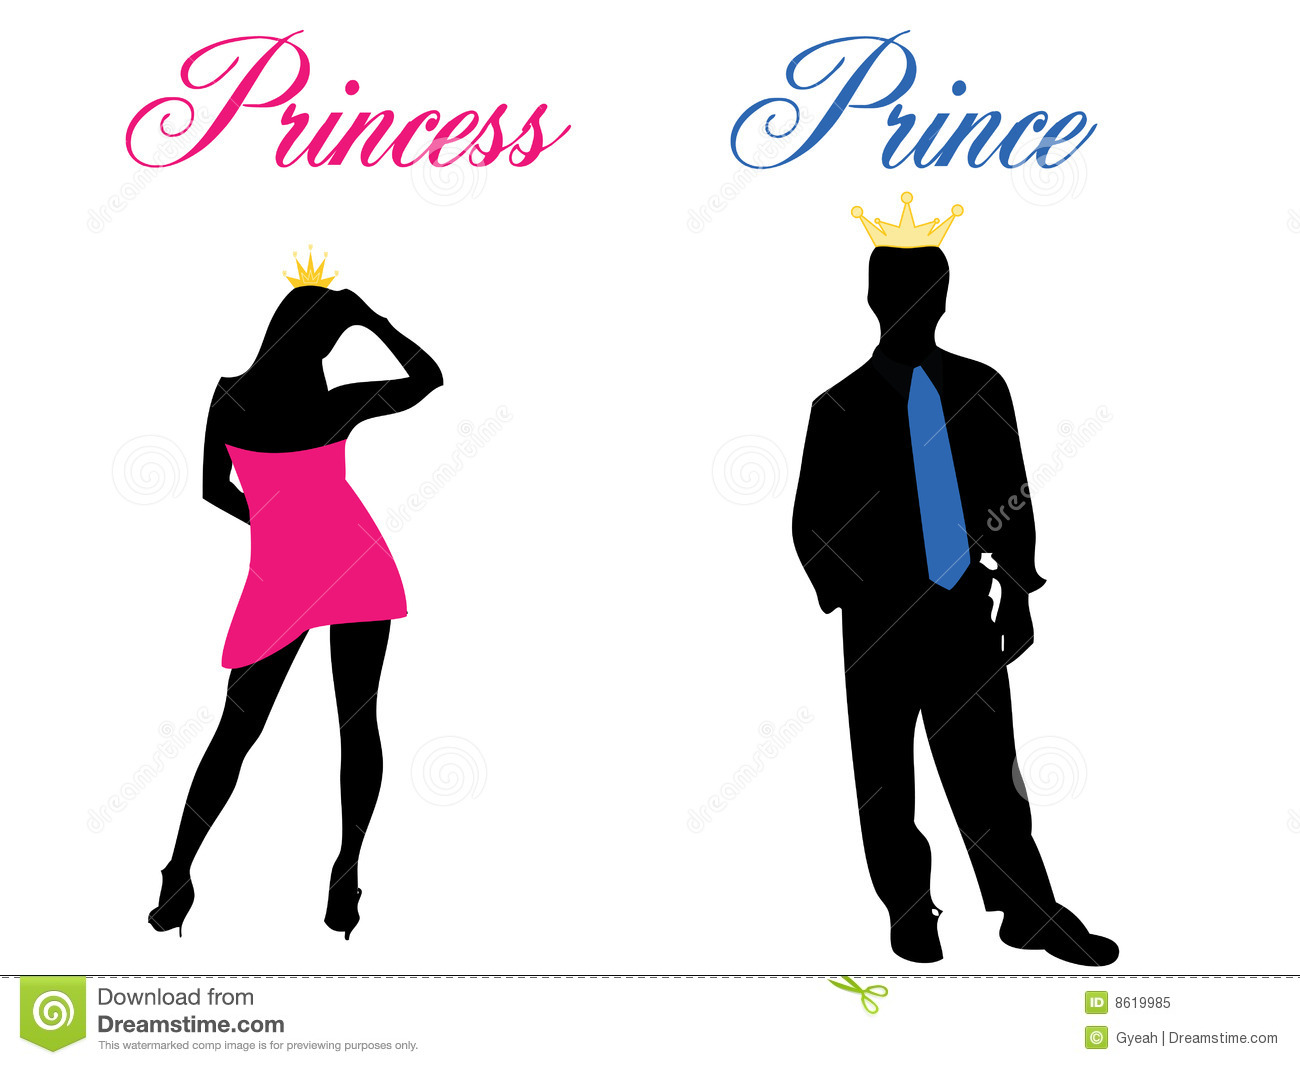 Prince And Princess Royalty Free Stock Photo  Image 8619985. Effective Resume Writing. Keep Calm Template Free. Educational Objectives For Resume. Office Assistant Work Experience Template. Recent Graduate Resume Template. Pages Gift Certificate Template. Windows Tablet With Stylus Template. Verbal Warning Letter Template